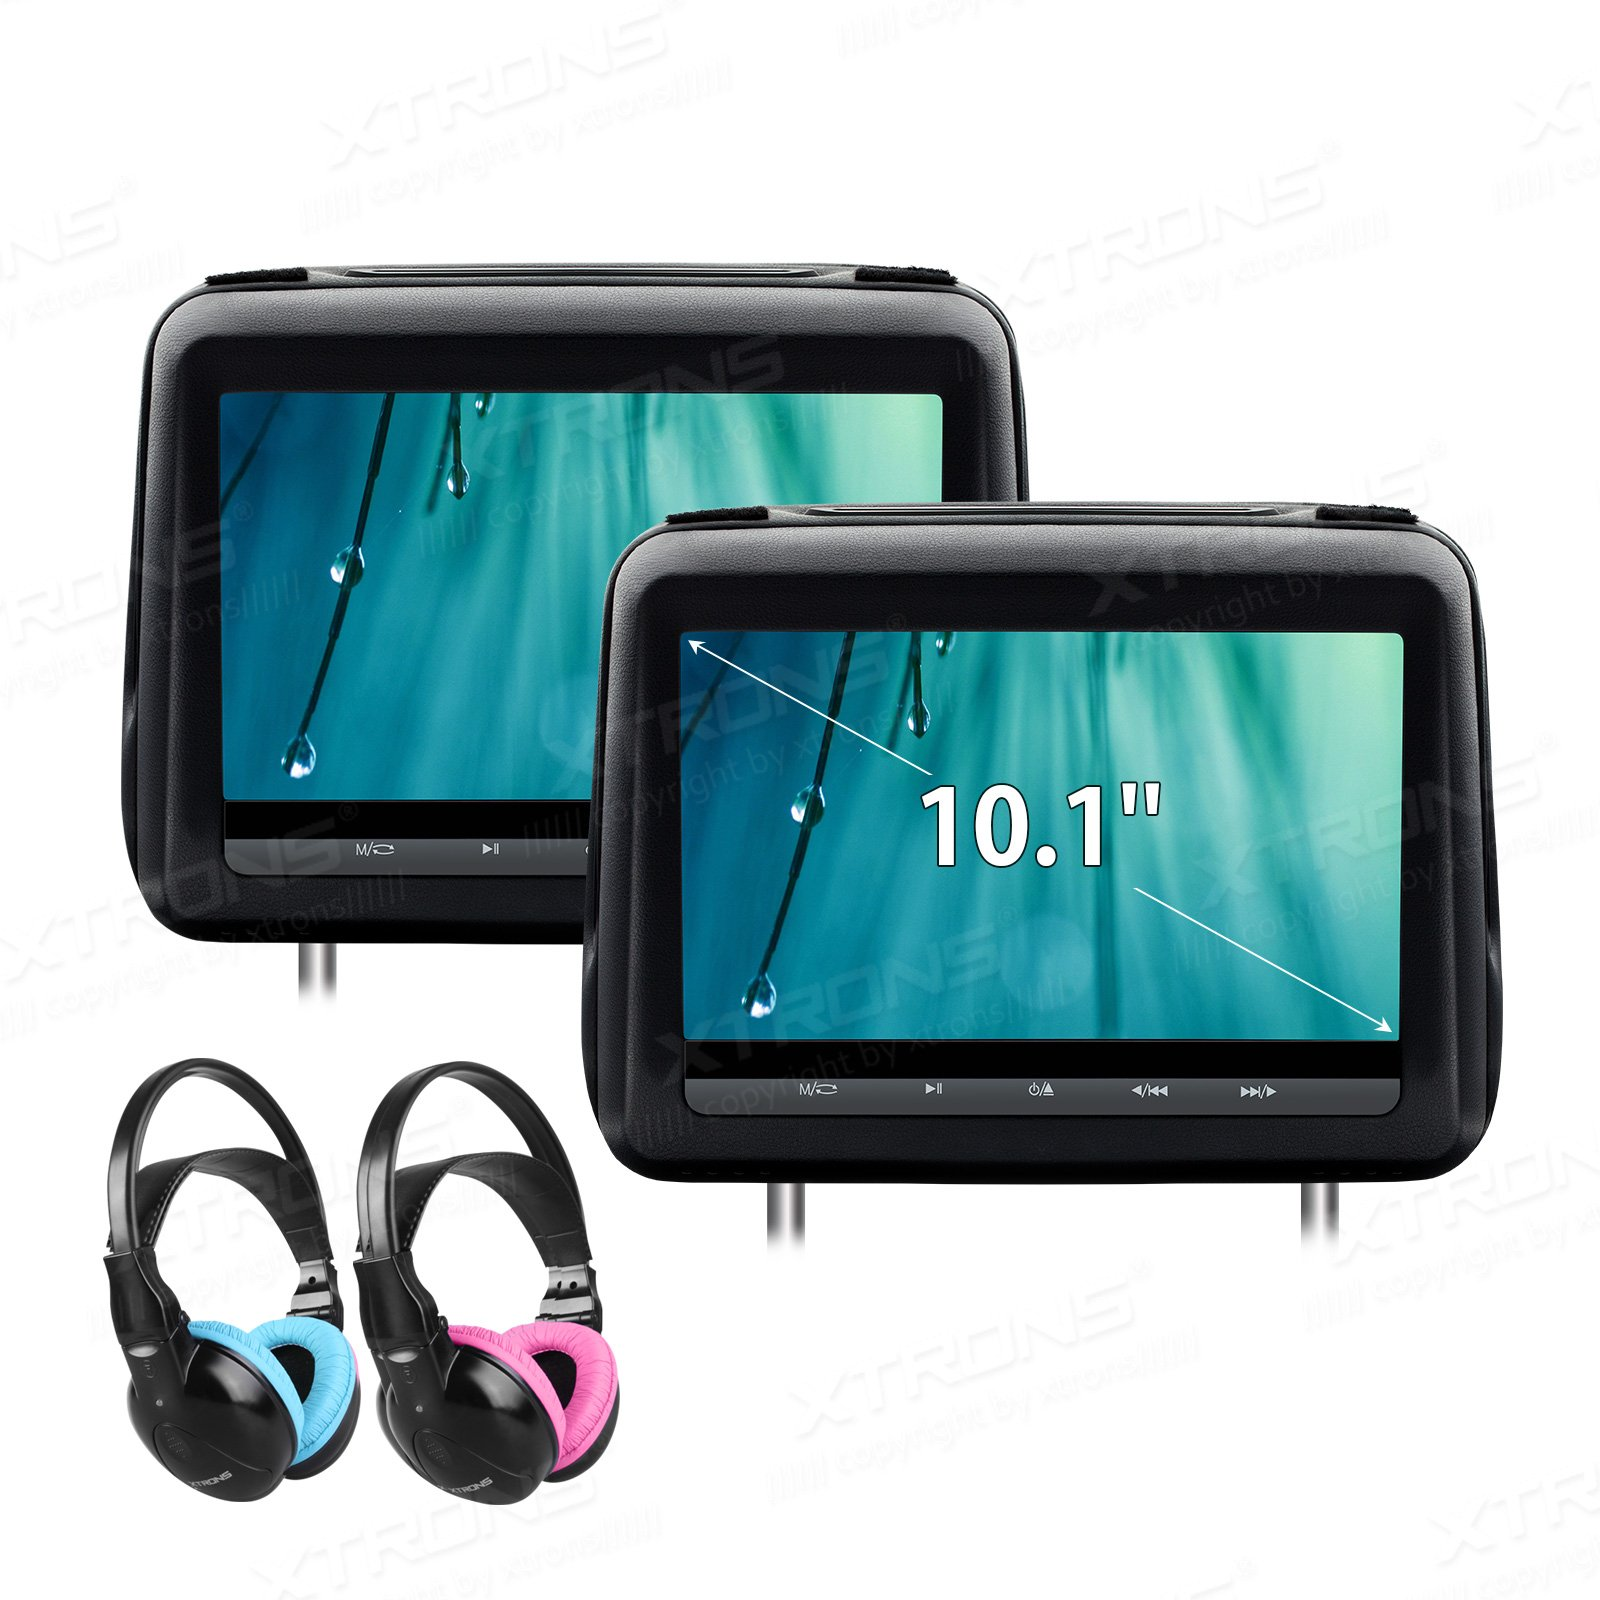 XTRONS 10.1 Inch HD Digital Screen Touch Panel Leather Cover Car Headrest DVD Player 1080P Video with HDMI Port Children IR Headphones Included(Blue&Pink)